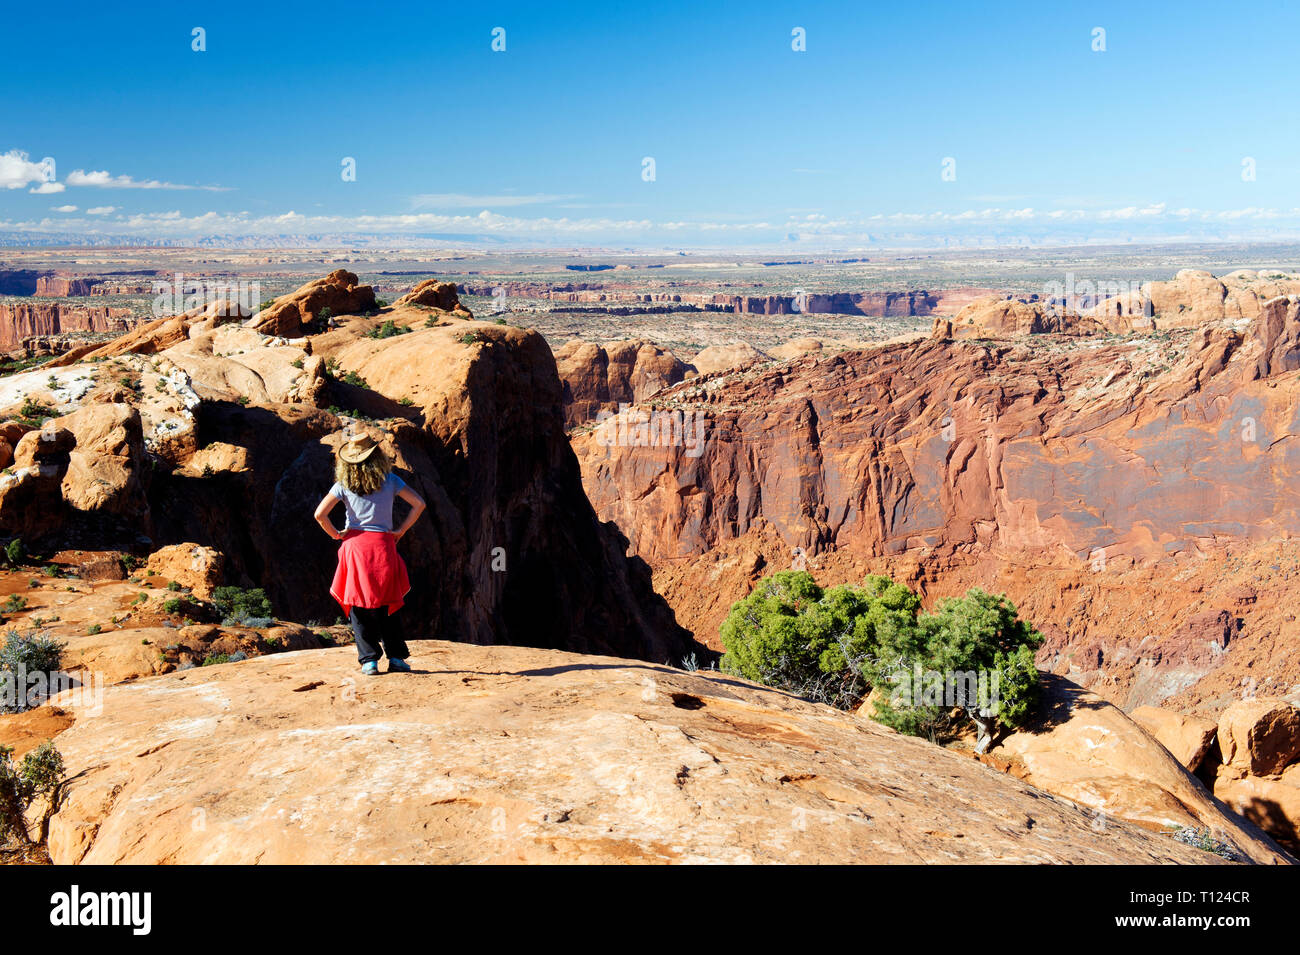 Female hiker contemplating the arid landscape of Canyonlands from the Upheaval Dome trail, Utah. - Stock Image